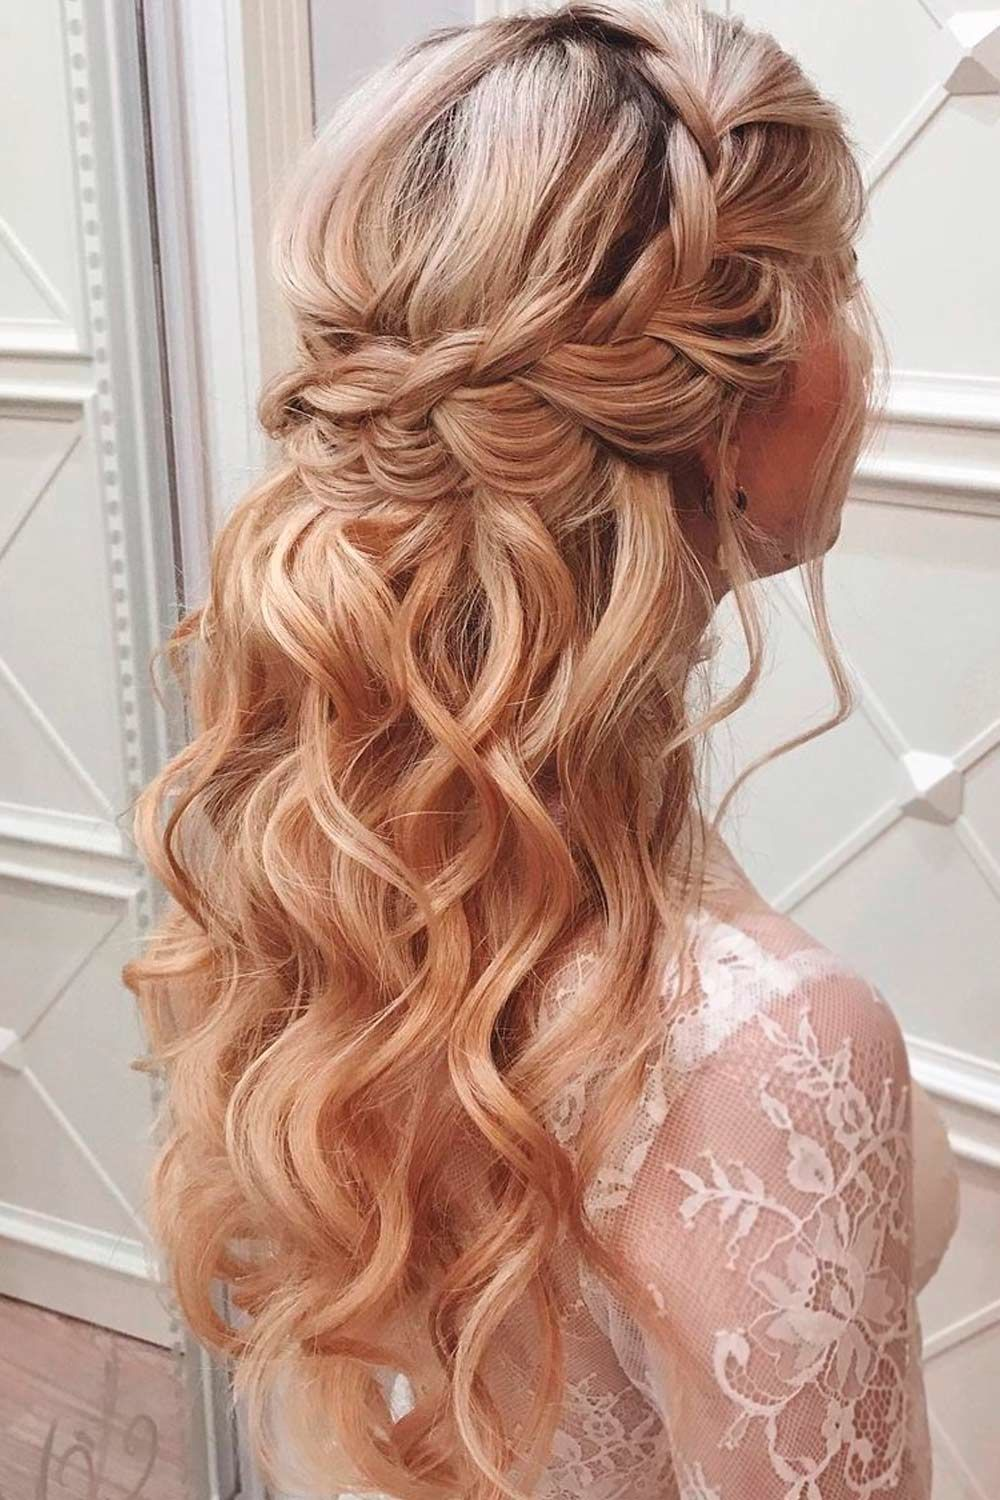 Hairstyles Christmas 2021 Nice Holiday Half Up Hairstyles For Long Hair Lovehairstyles Com In 2021 Hair Styles Half Up Hair Down Hairstyles For Long Hair